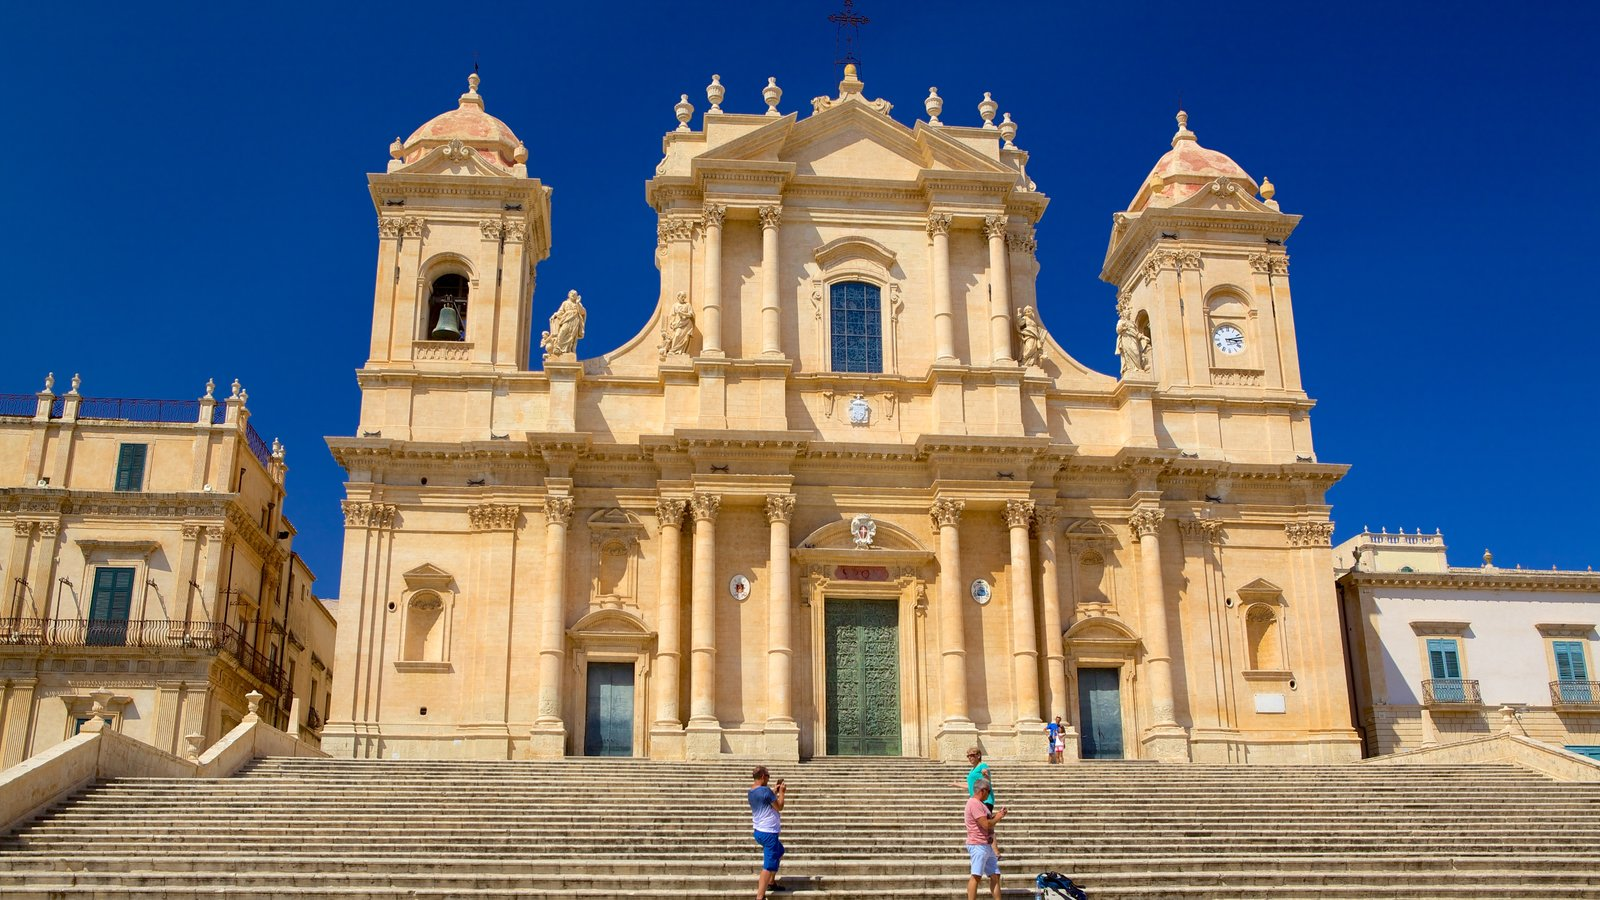 Cathedral of Noto which includes a church or cathedral and heritage architecture